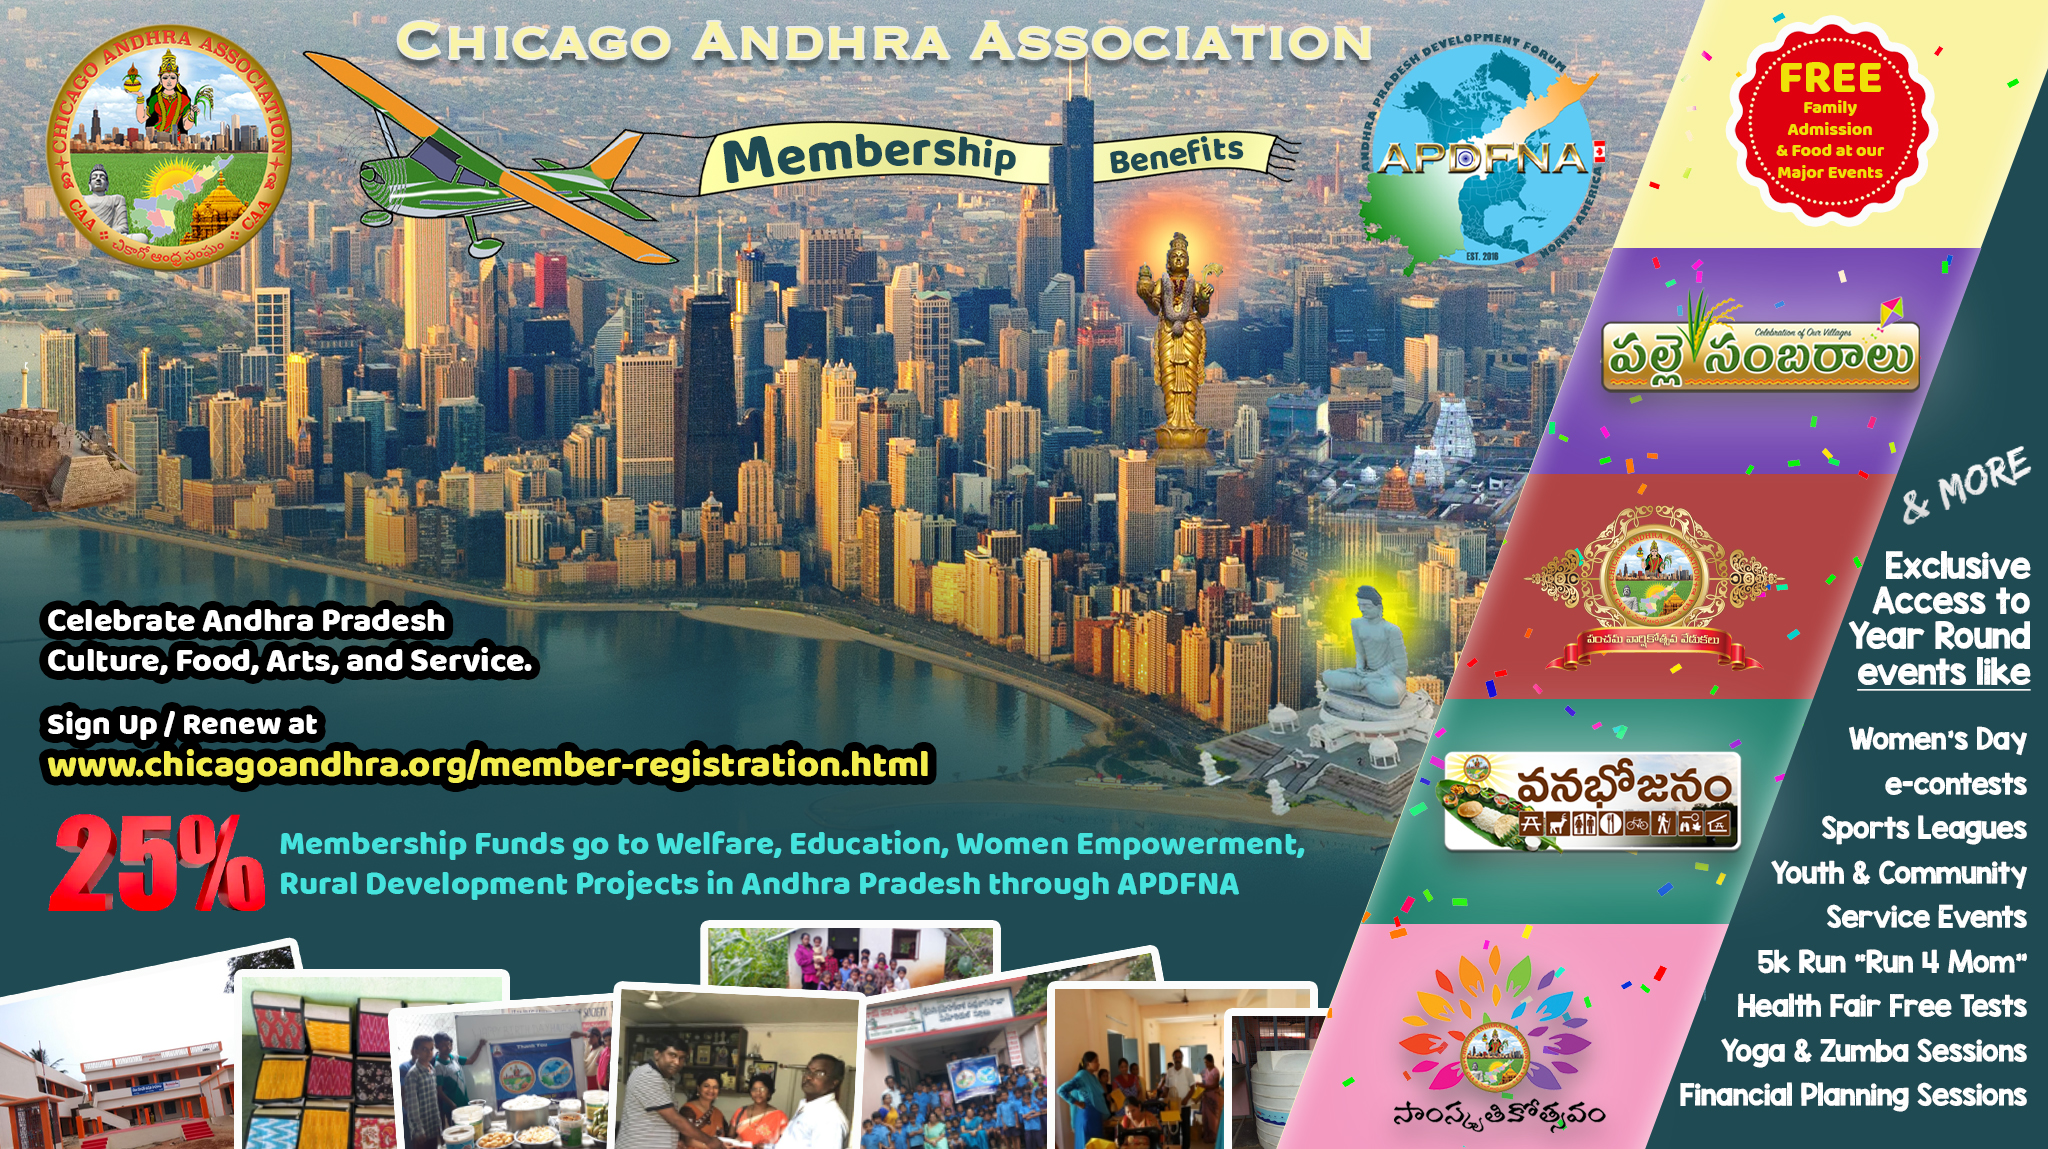 Chicago Andhra Association